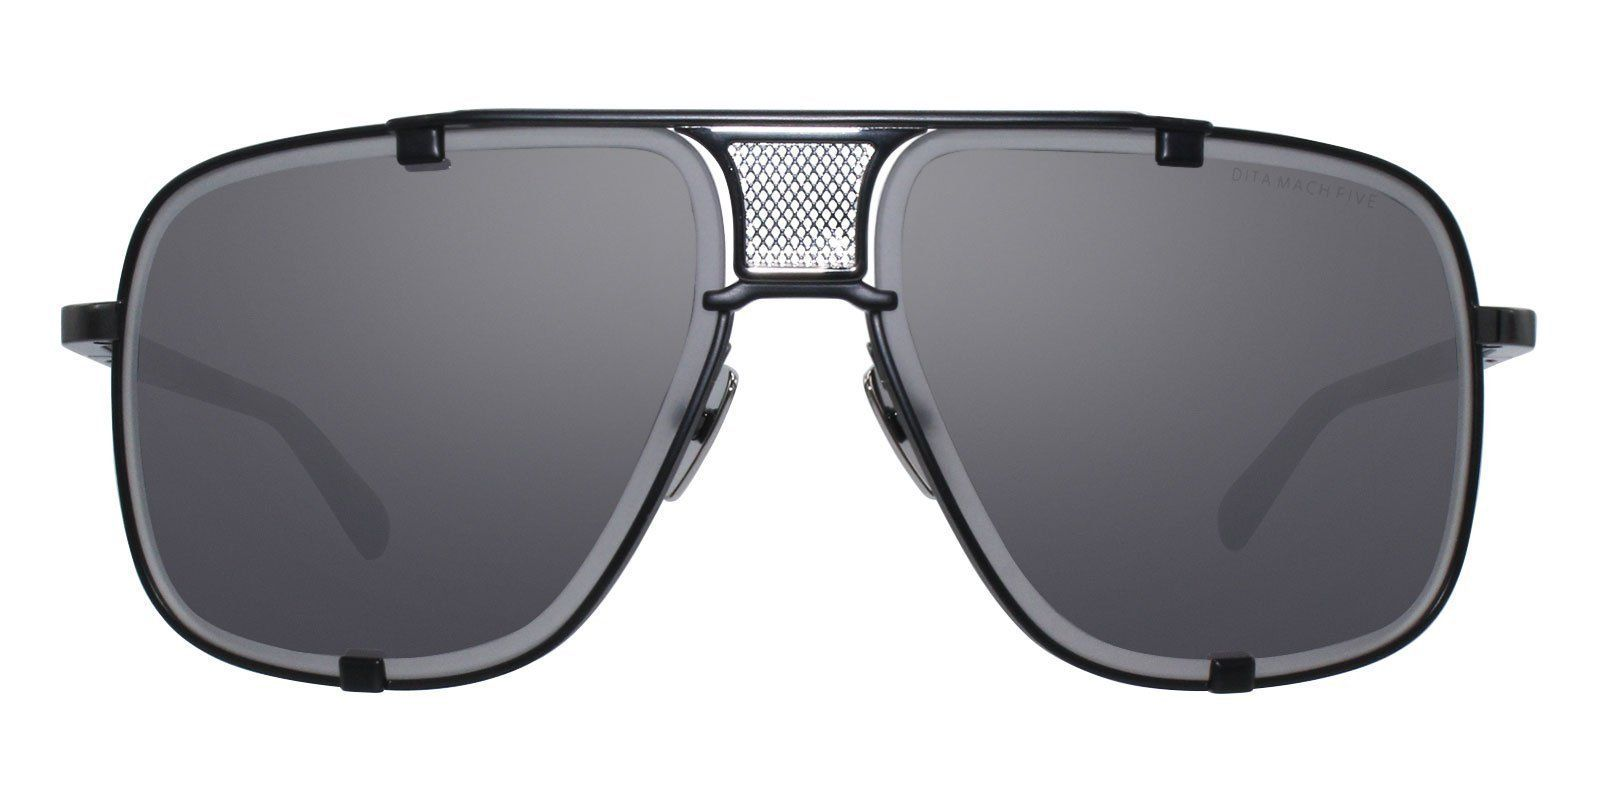 ed69e5a4ece Dita - Mach Five Black - Gray sunglasses